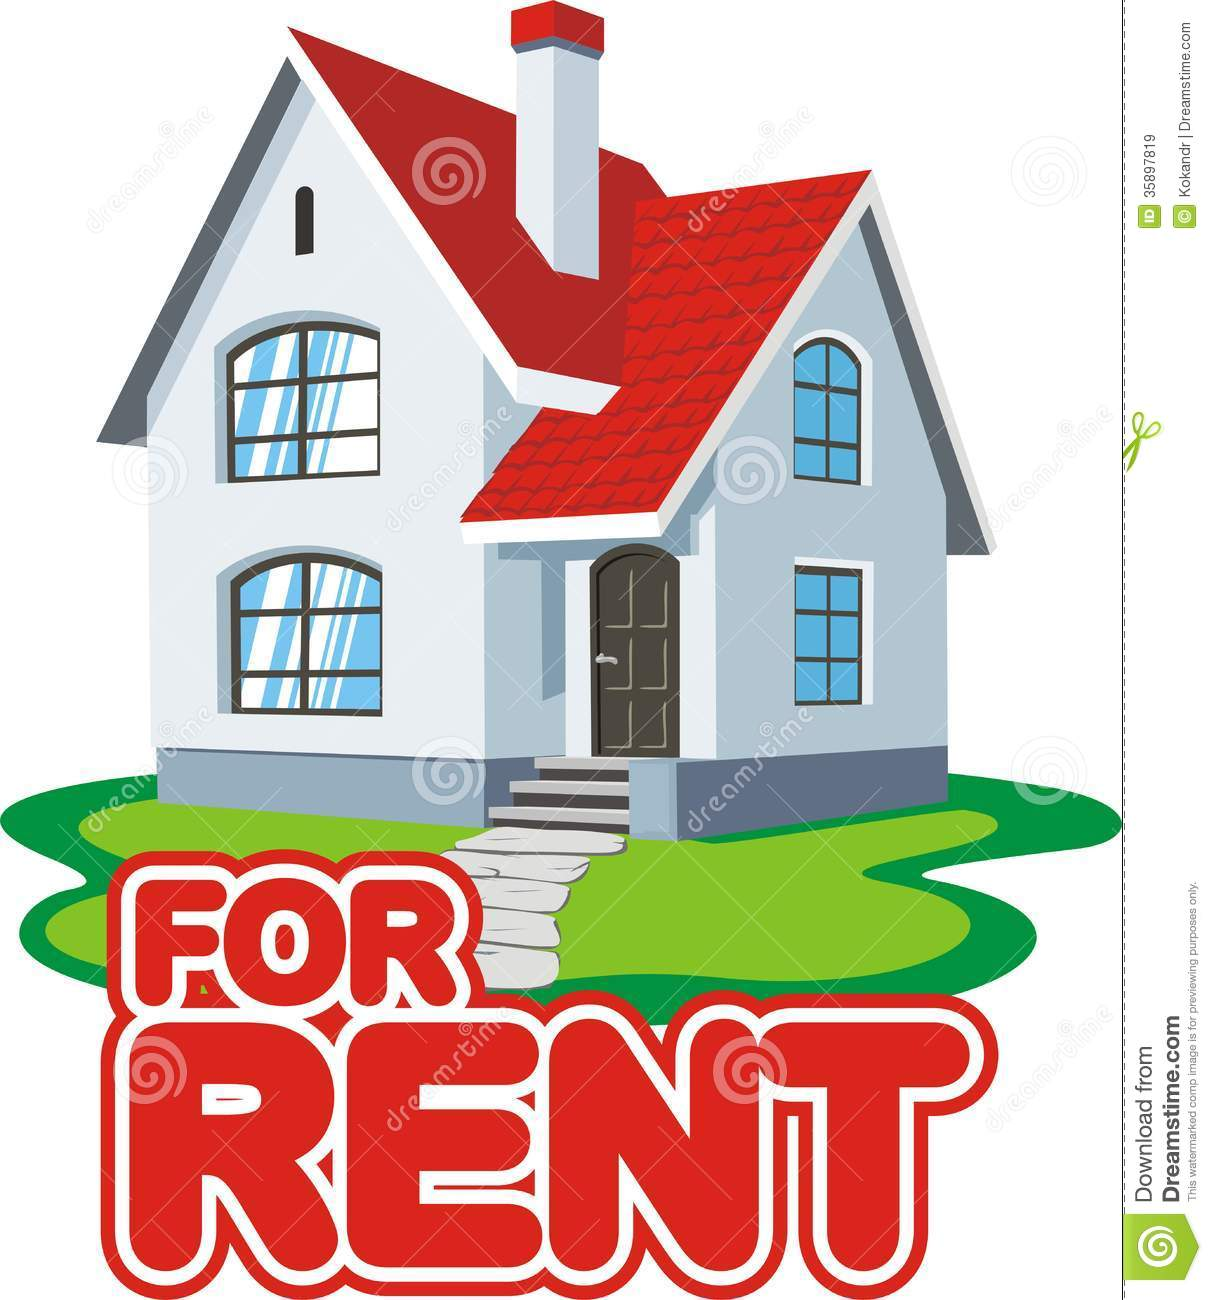 House Rent Com: House For Rent Stock Vector. Illustration Of Realtor